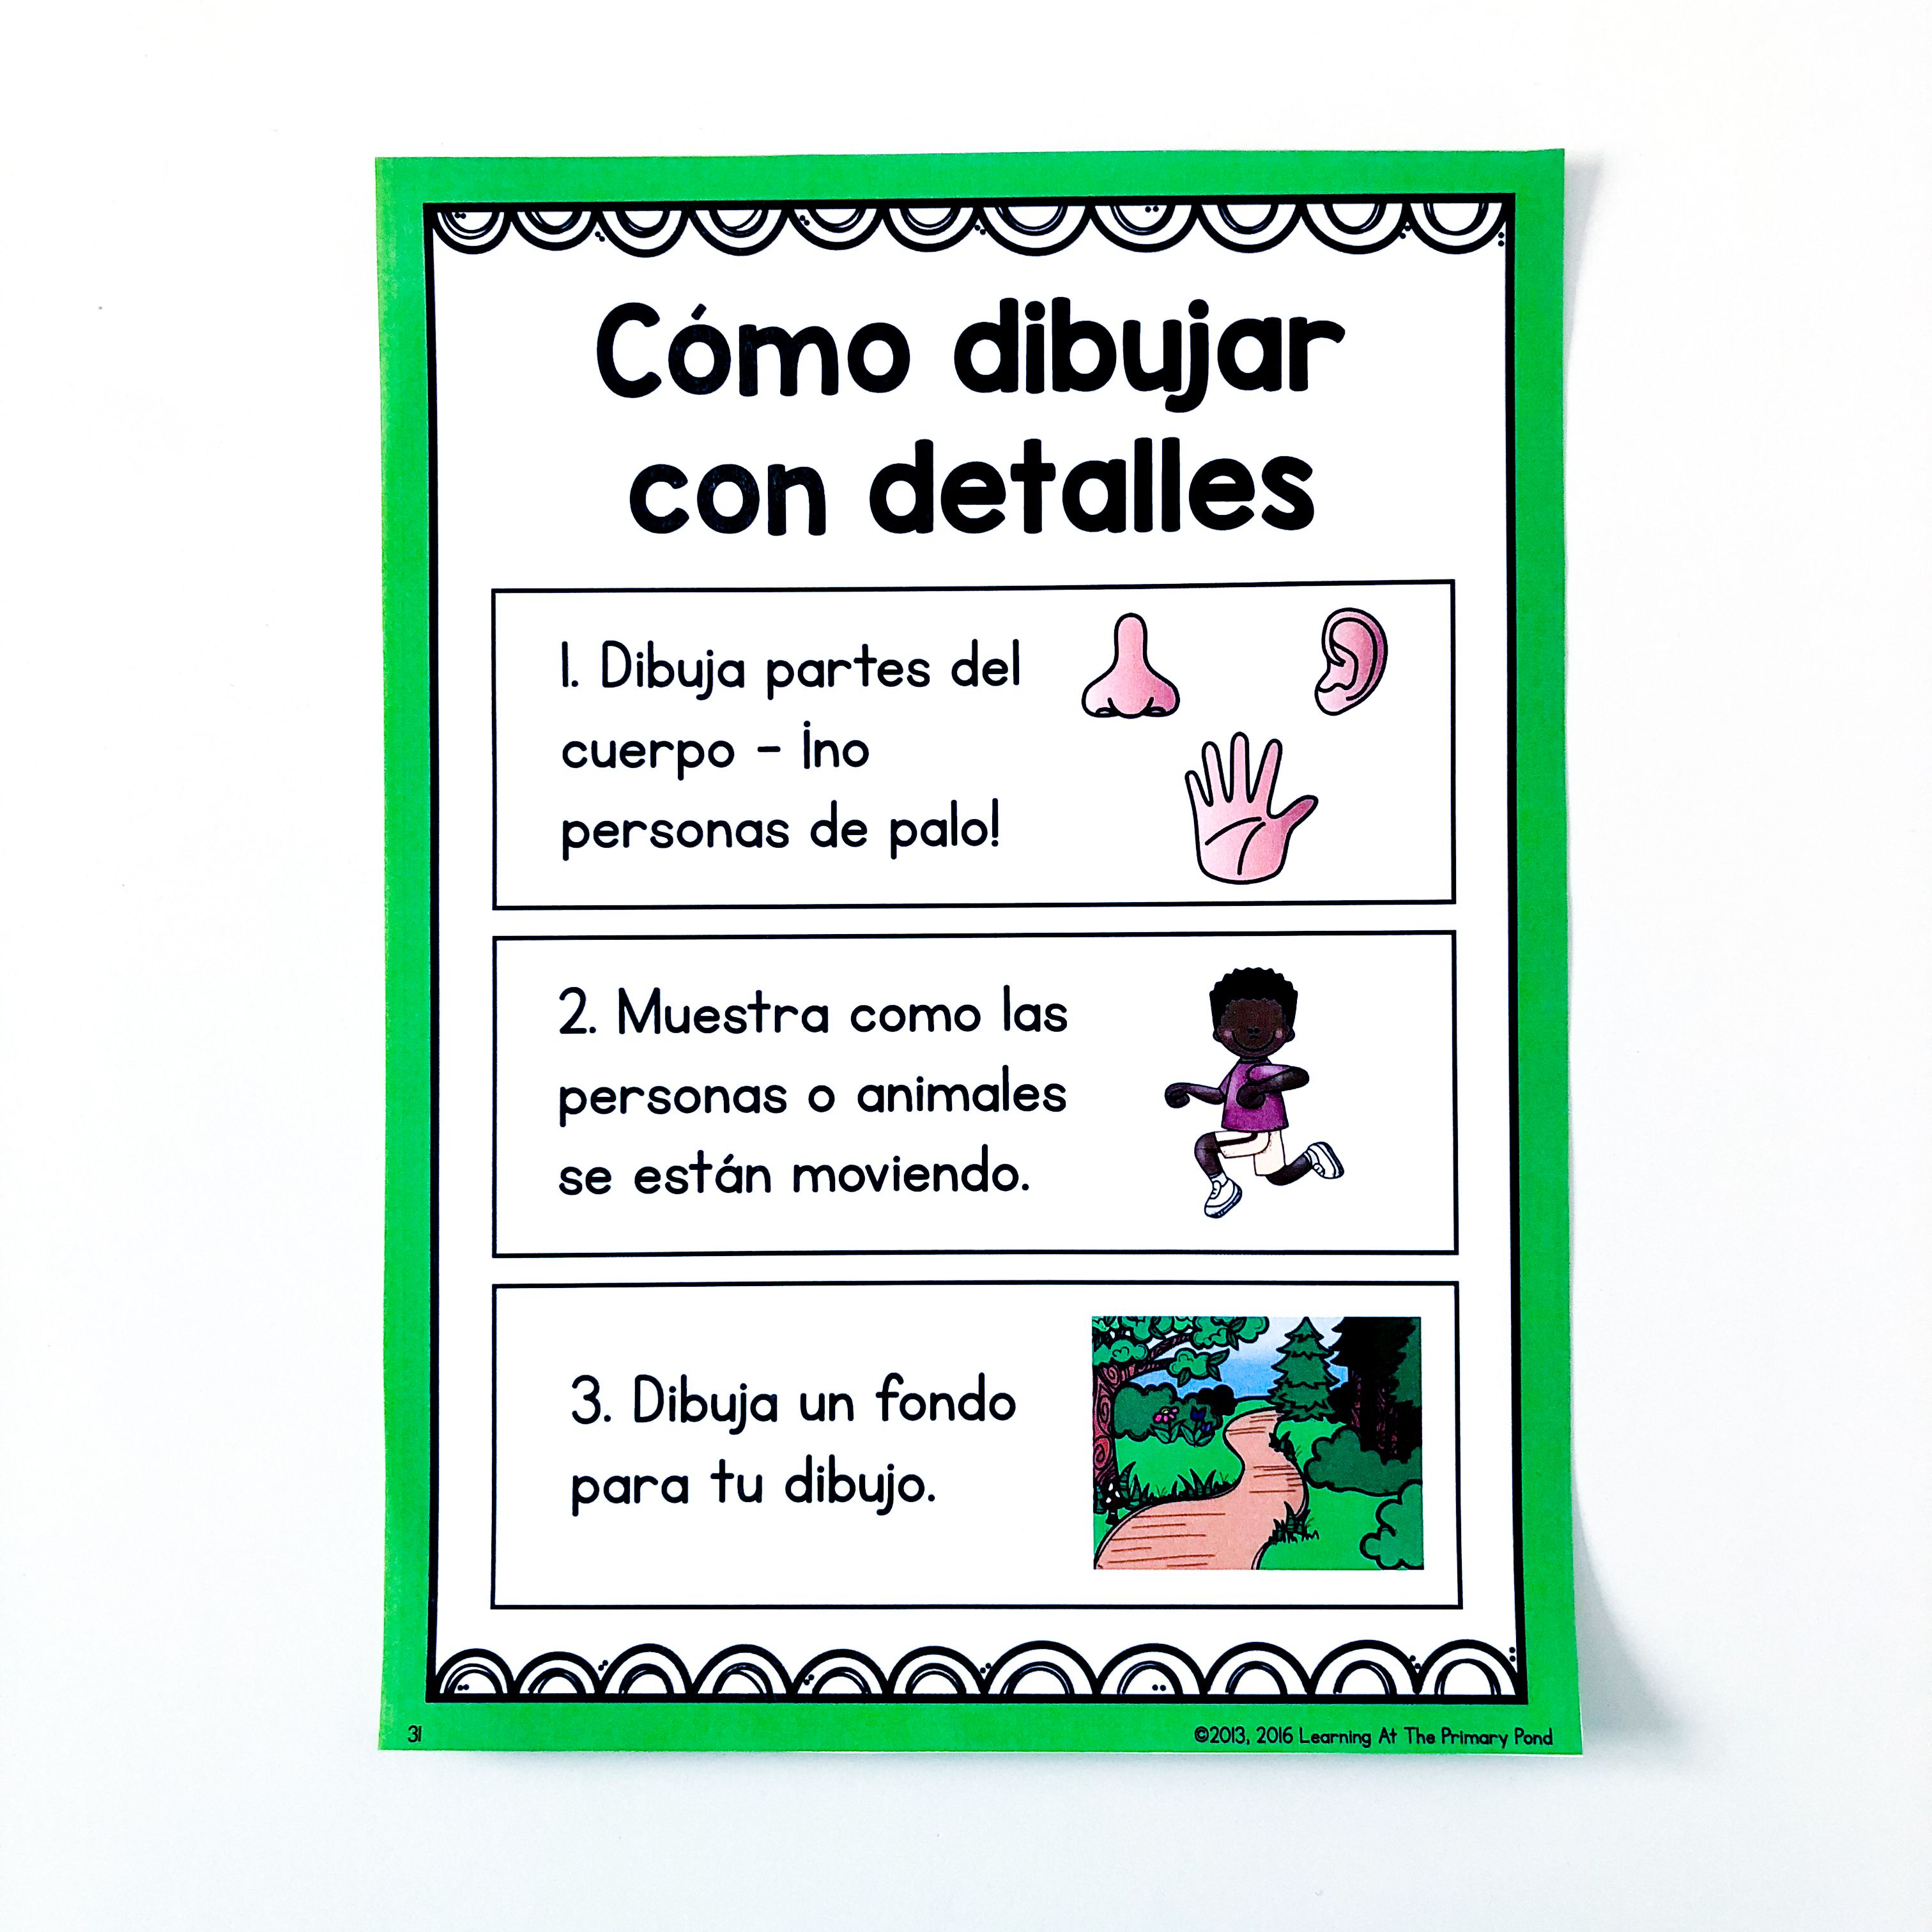 I Use This Poster To Teach My Bilingual Kindergarten